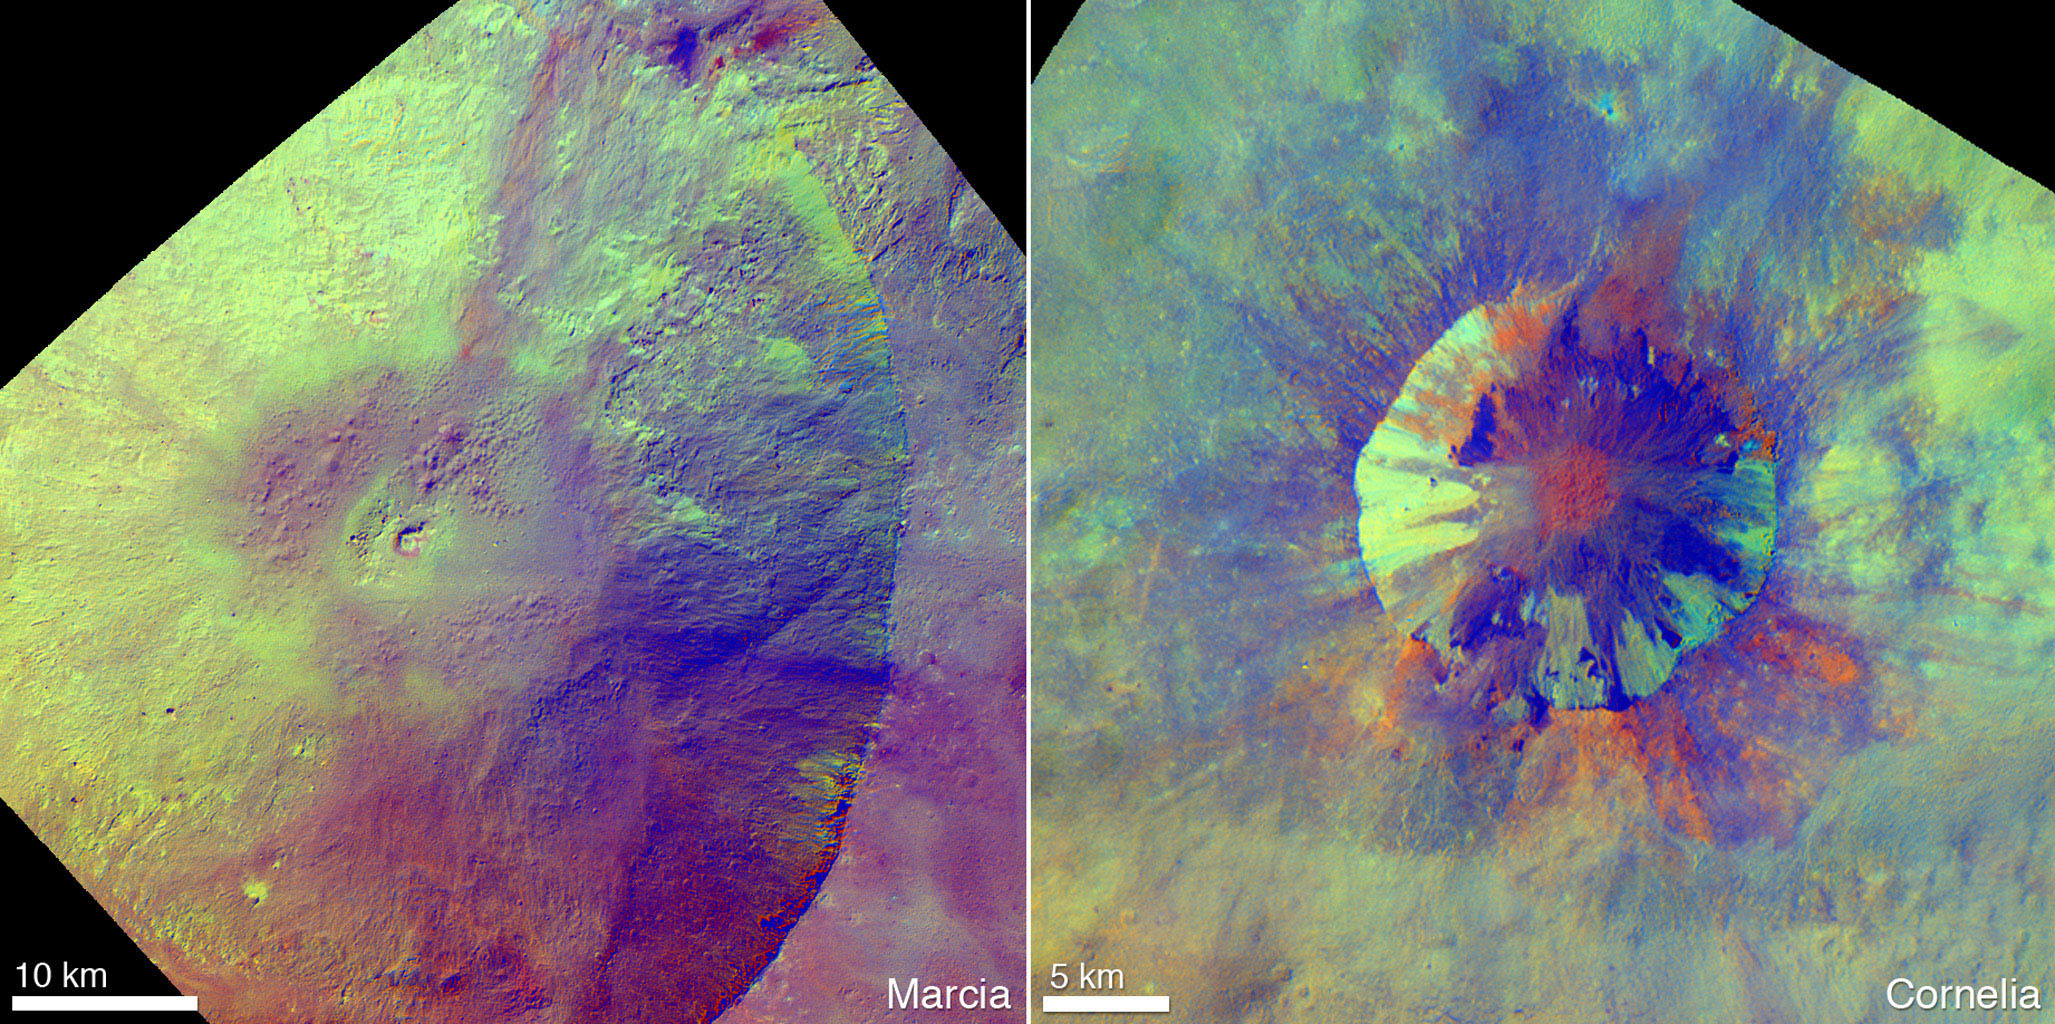 These enhanced-color views from NASA's Dawn mission show an unusual 'pitted terrain' on the floors of the craters named Marcia (left) and Cornelia (right) on the giant asteroid Vesta.